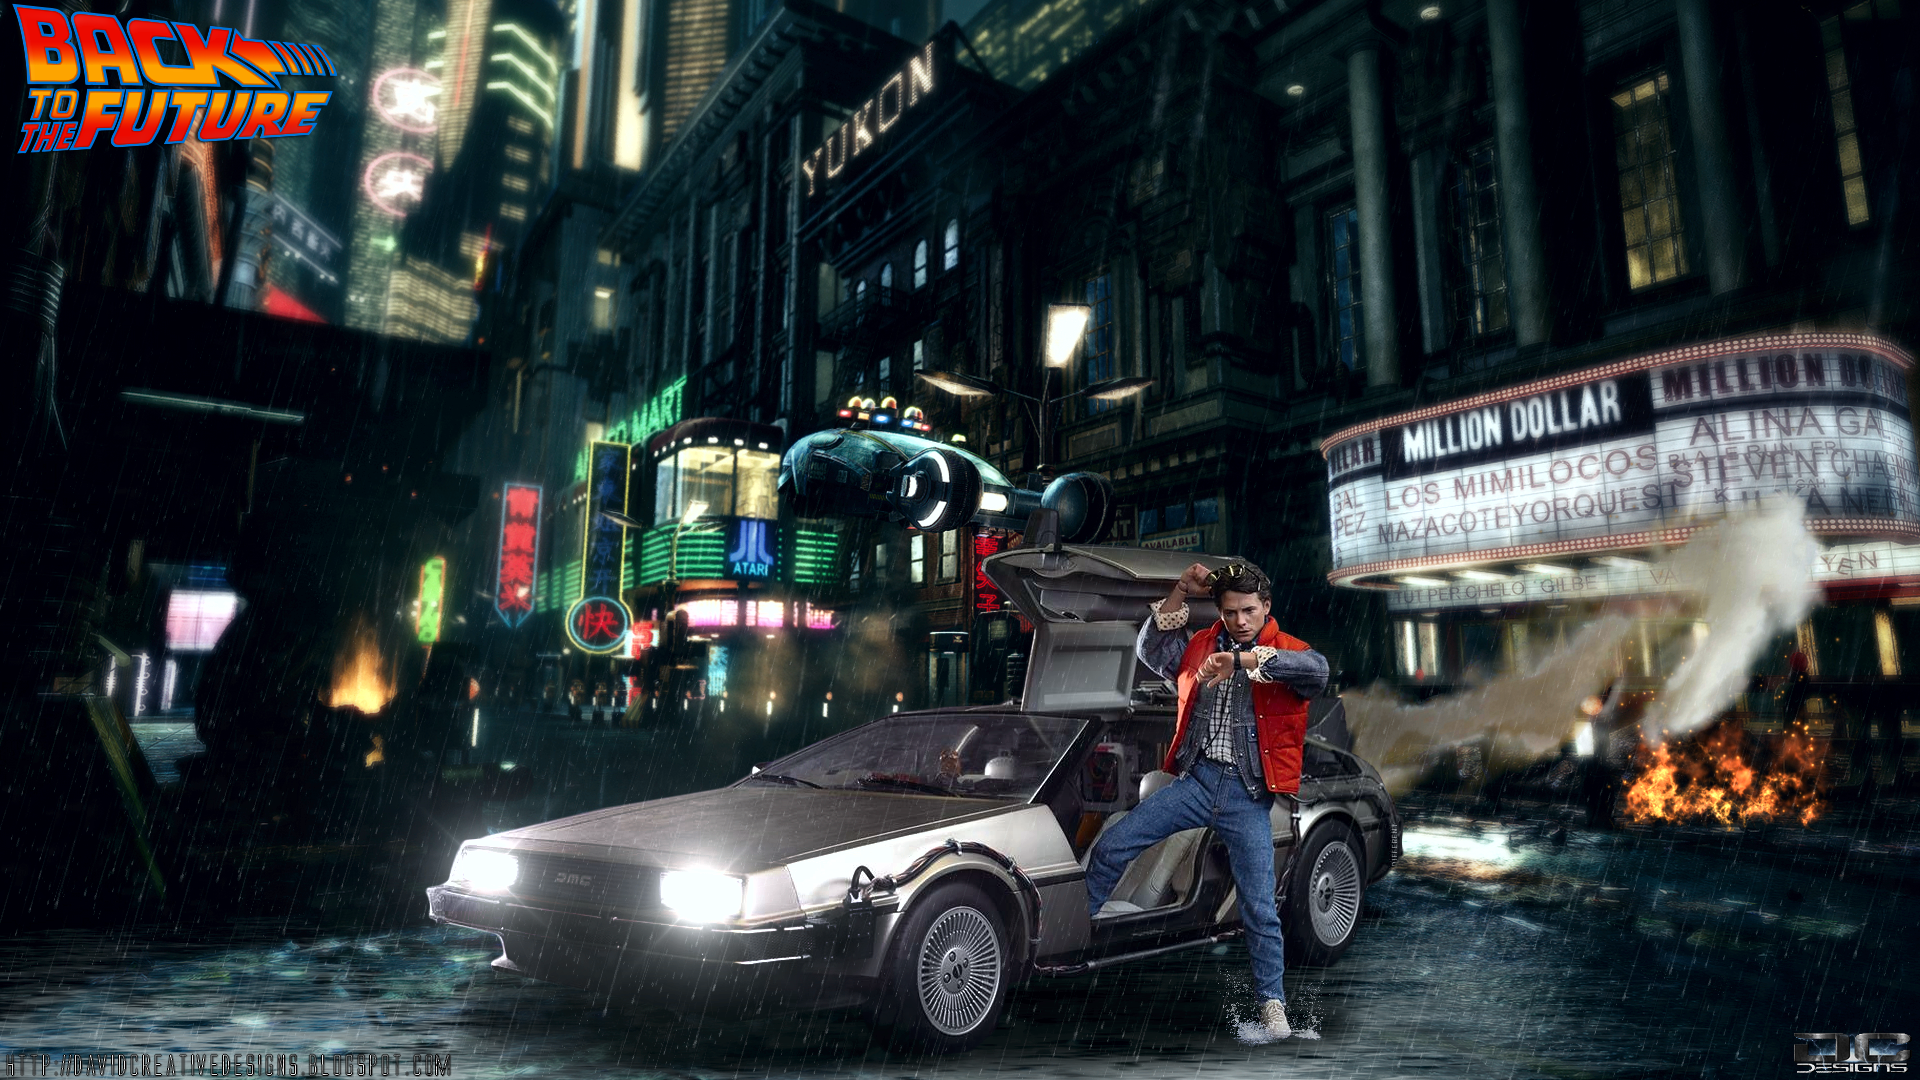 Hot Toys Back To The Future HD Wallpaper DC Designs 1920x1080